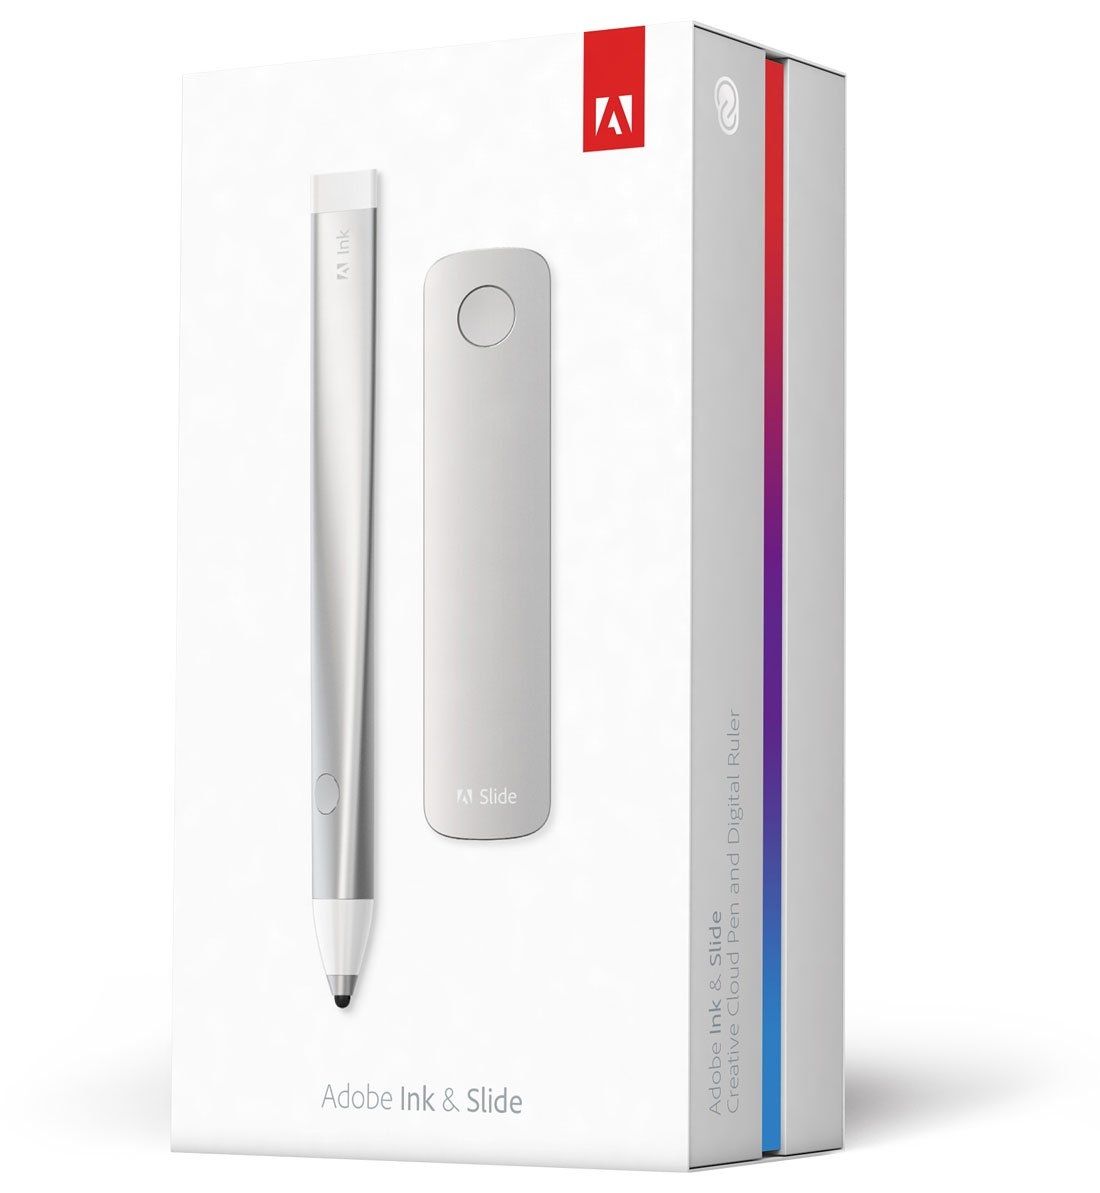 Adobe Ink & Slide Creative Cloud Connected Precision Stylus for iPad